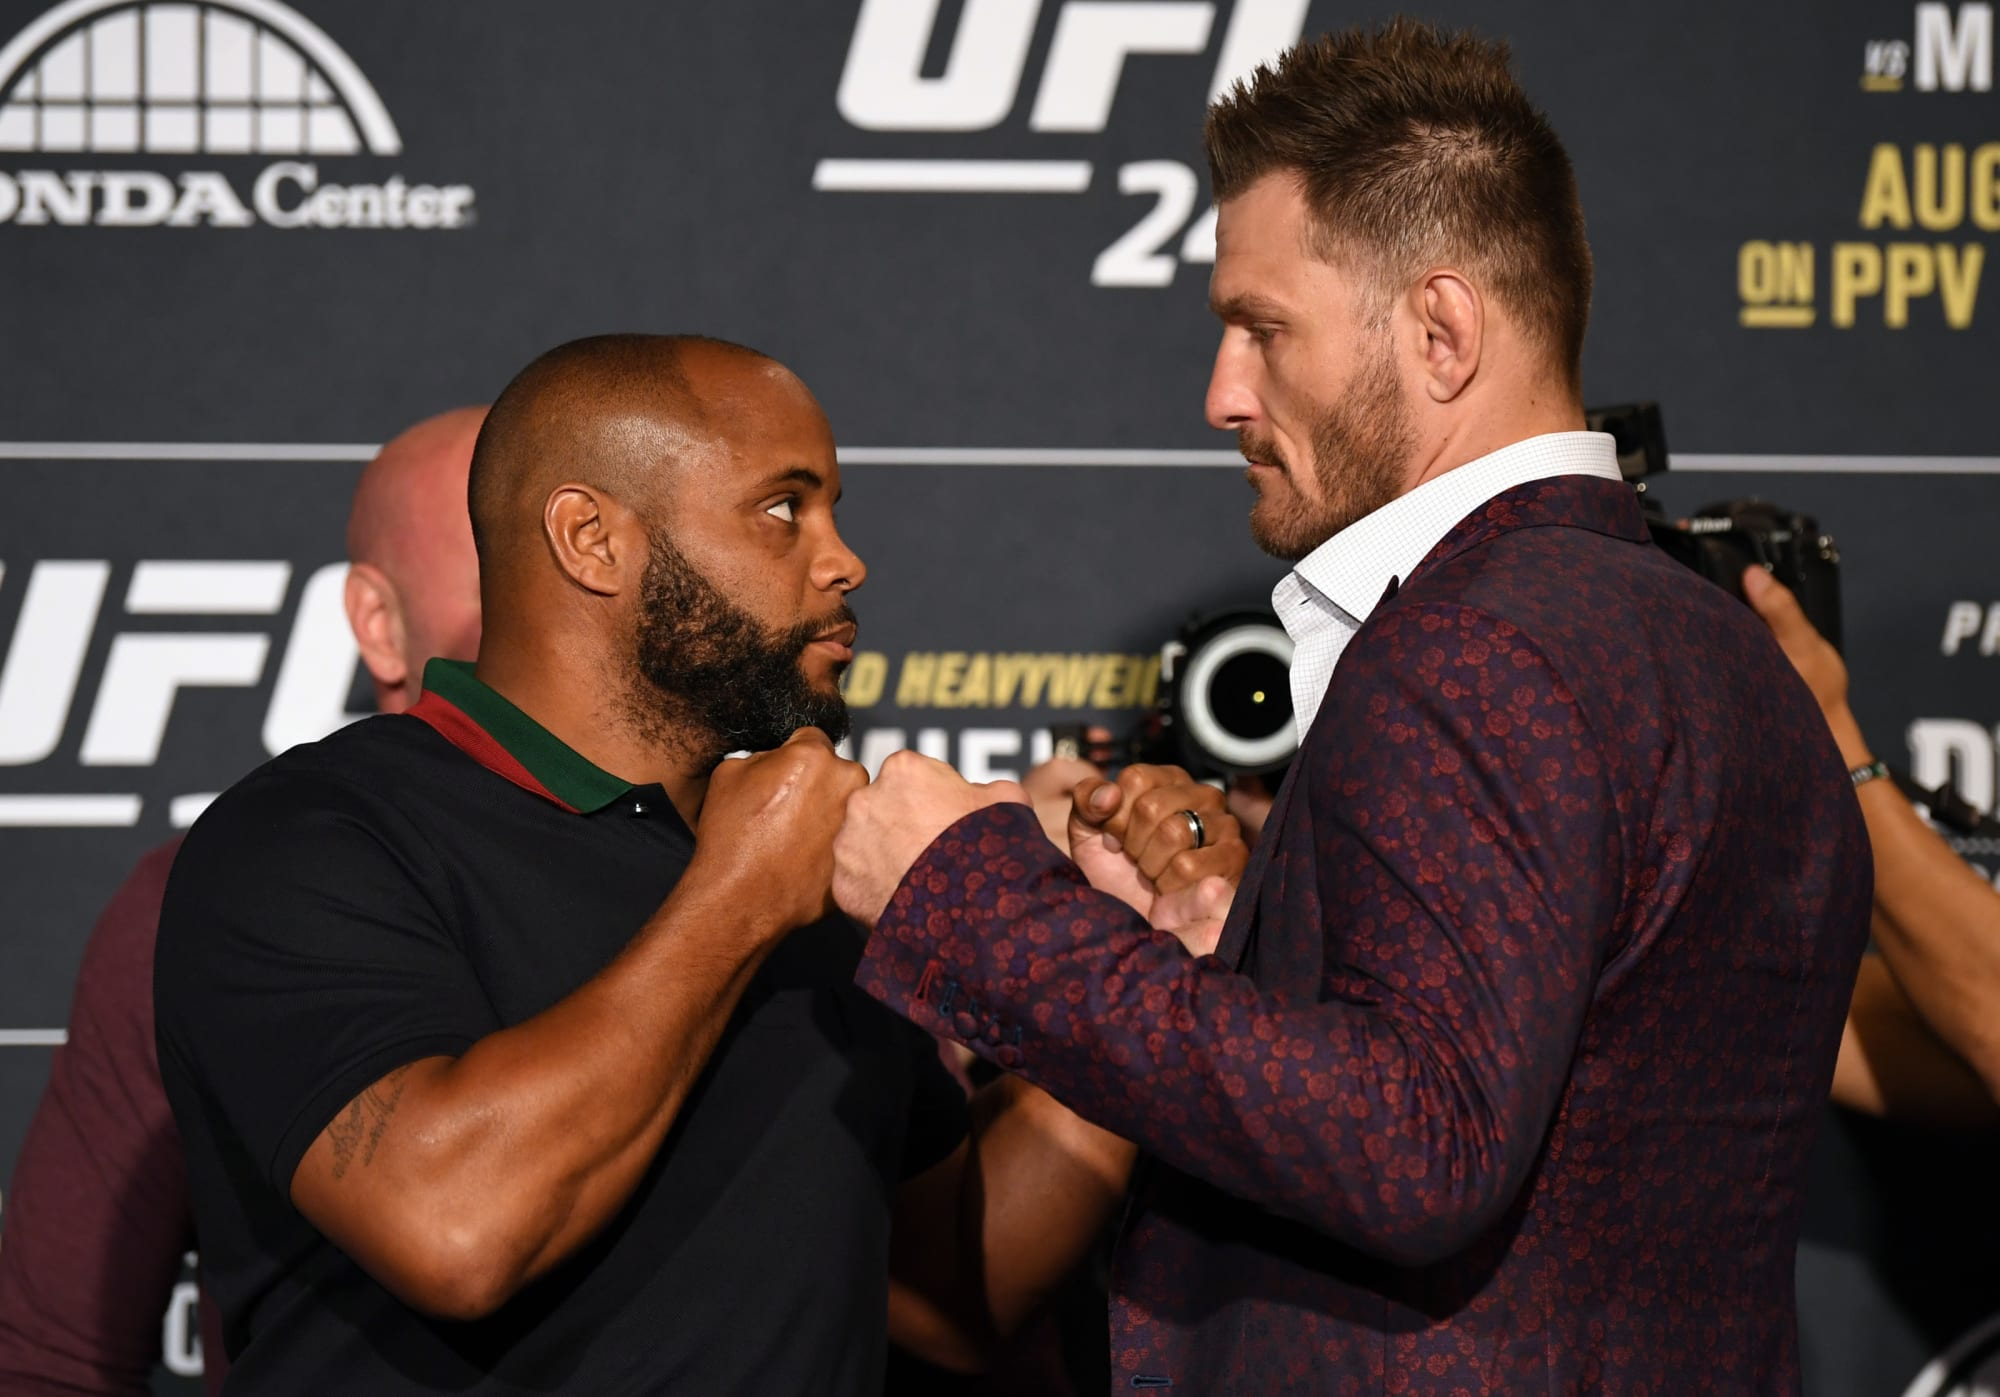 Here is the full UFC 252: Stipe Miocic vs. Daniel Cormier main card